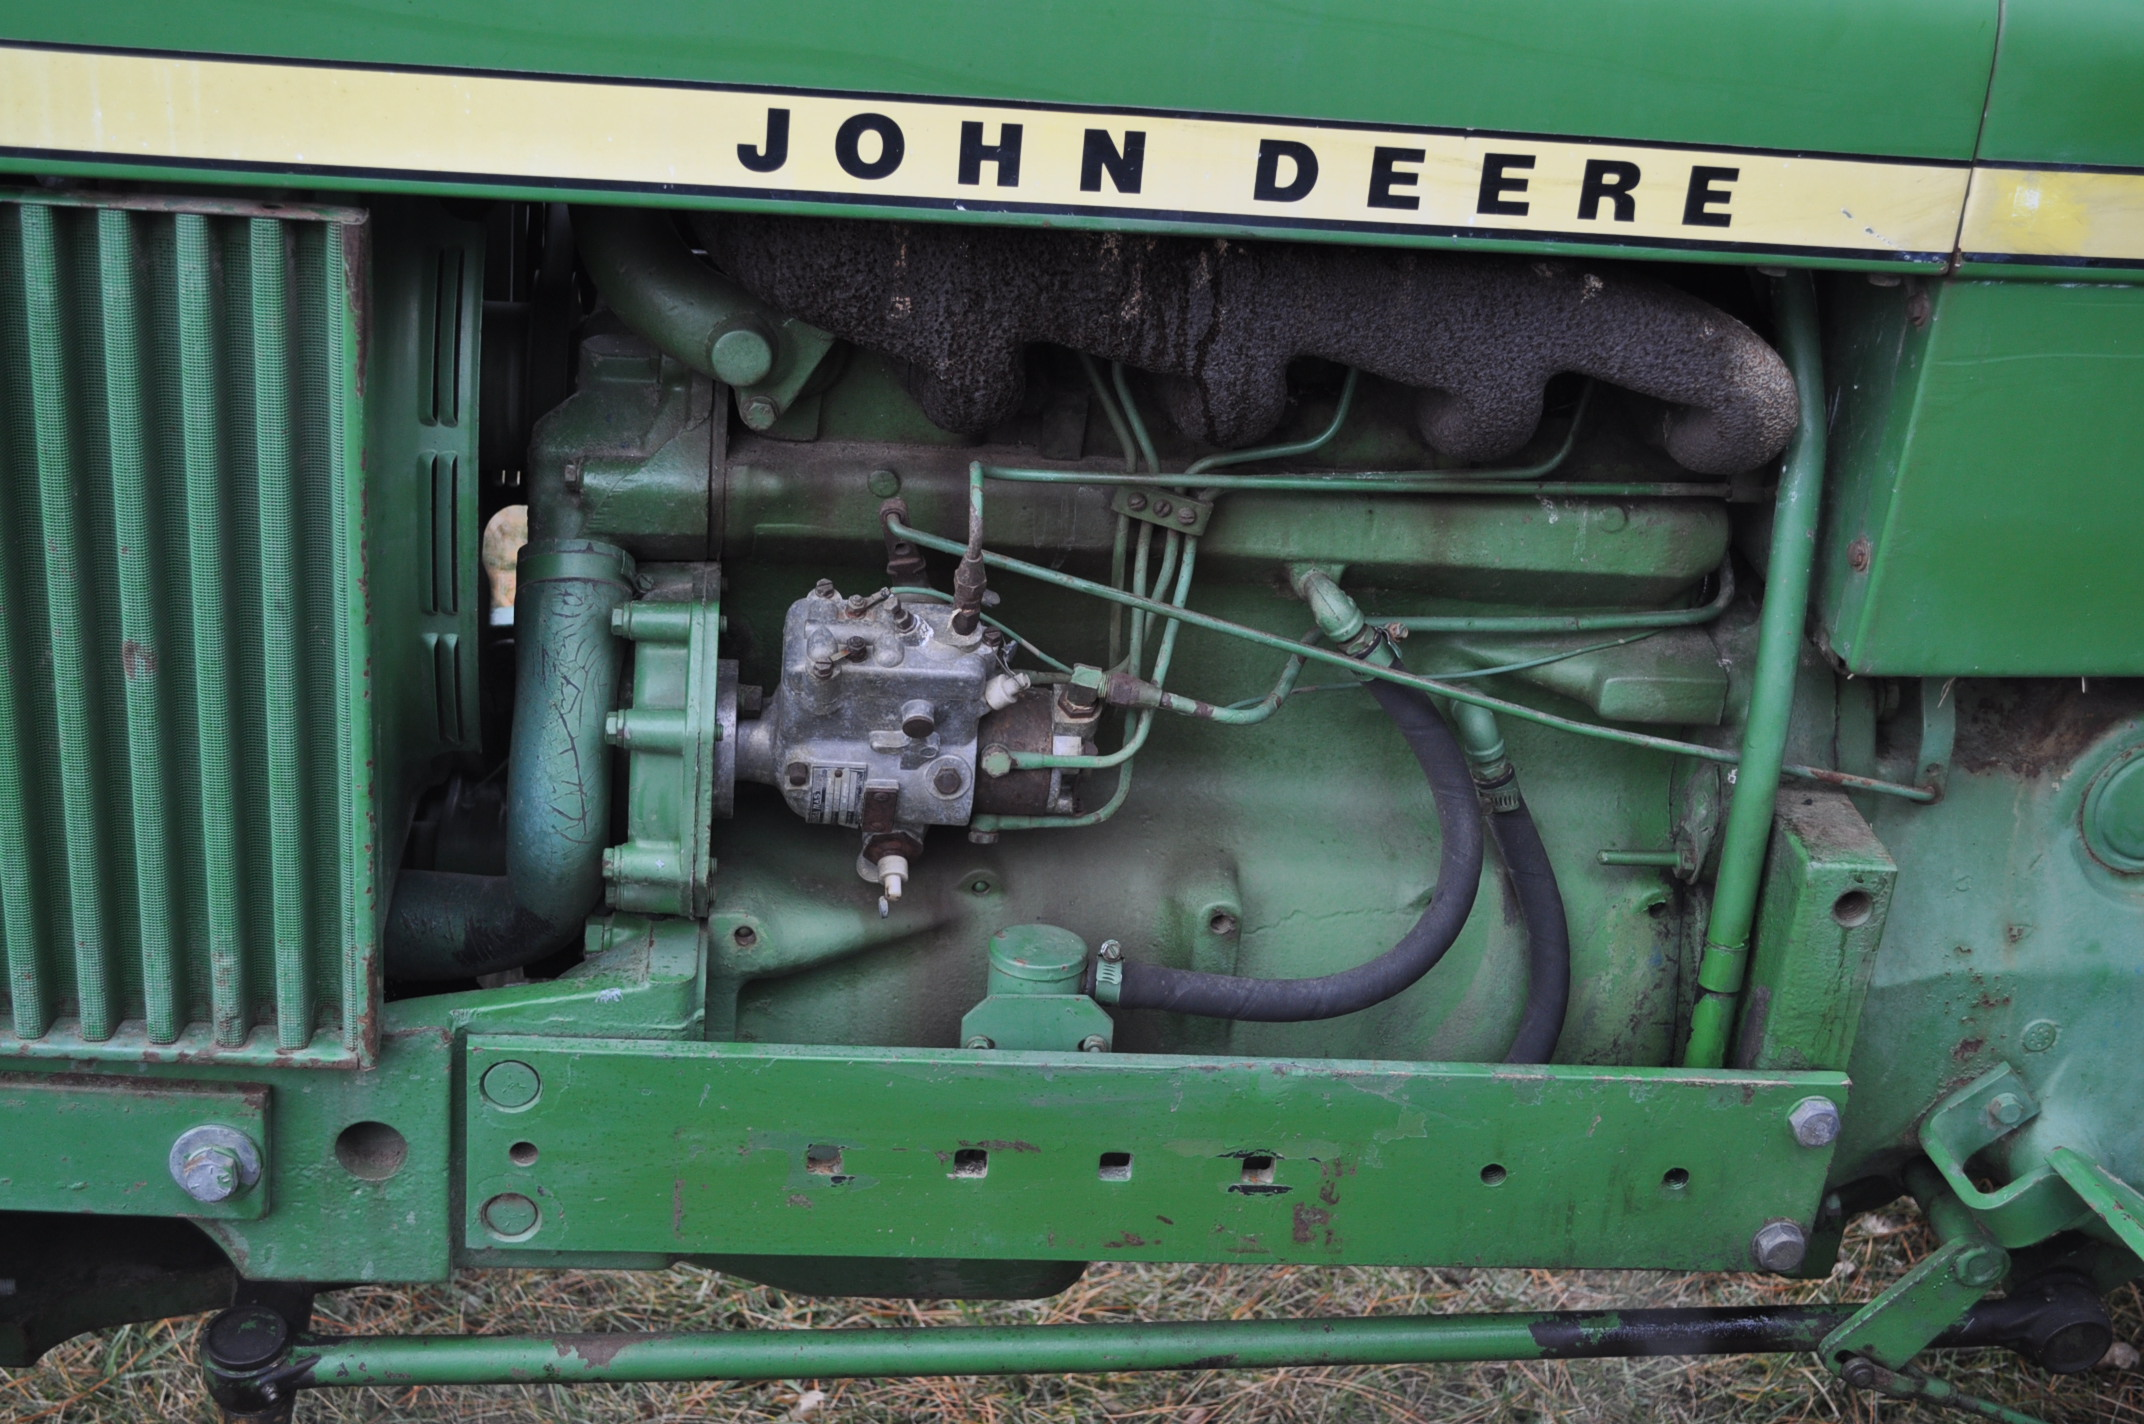 John Deere 2030 tractor, diesel, 16.9-28 rear, 7.5-15 front, canopy, power shuttle, 2 hyd remotes, - Image 10 of 20